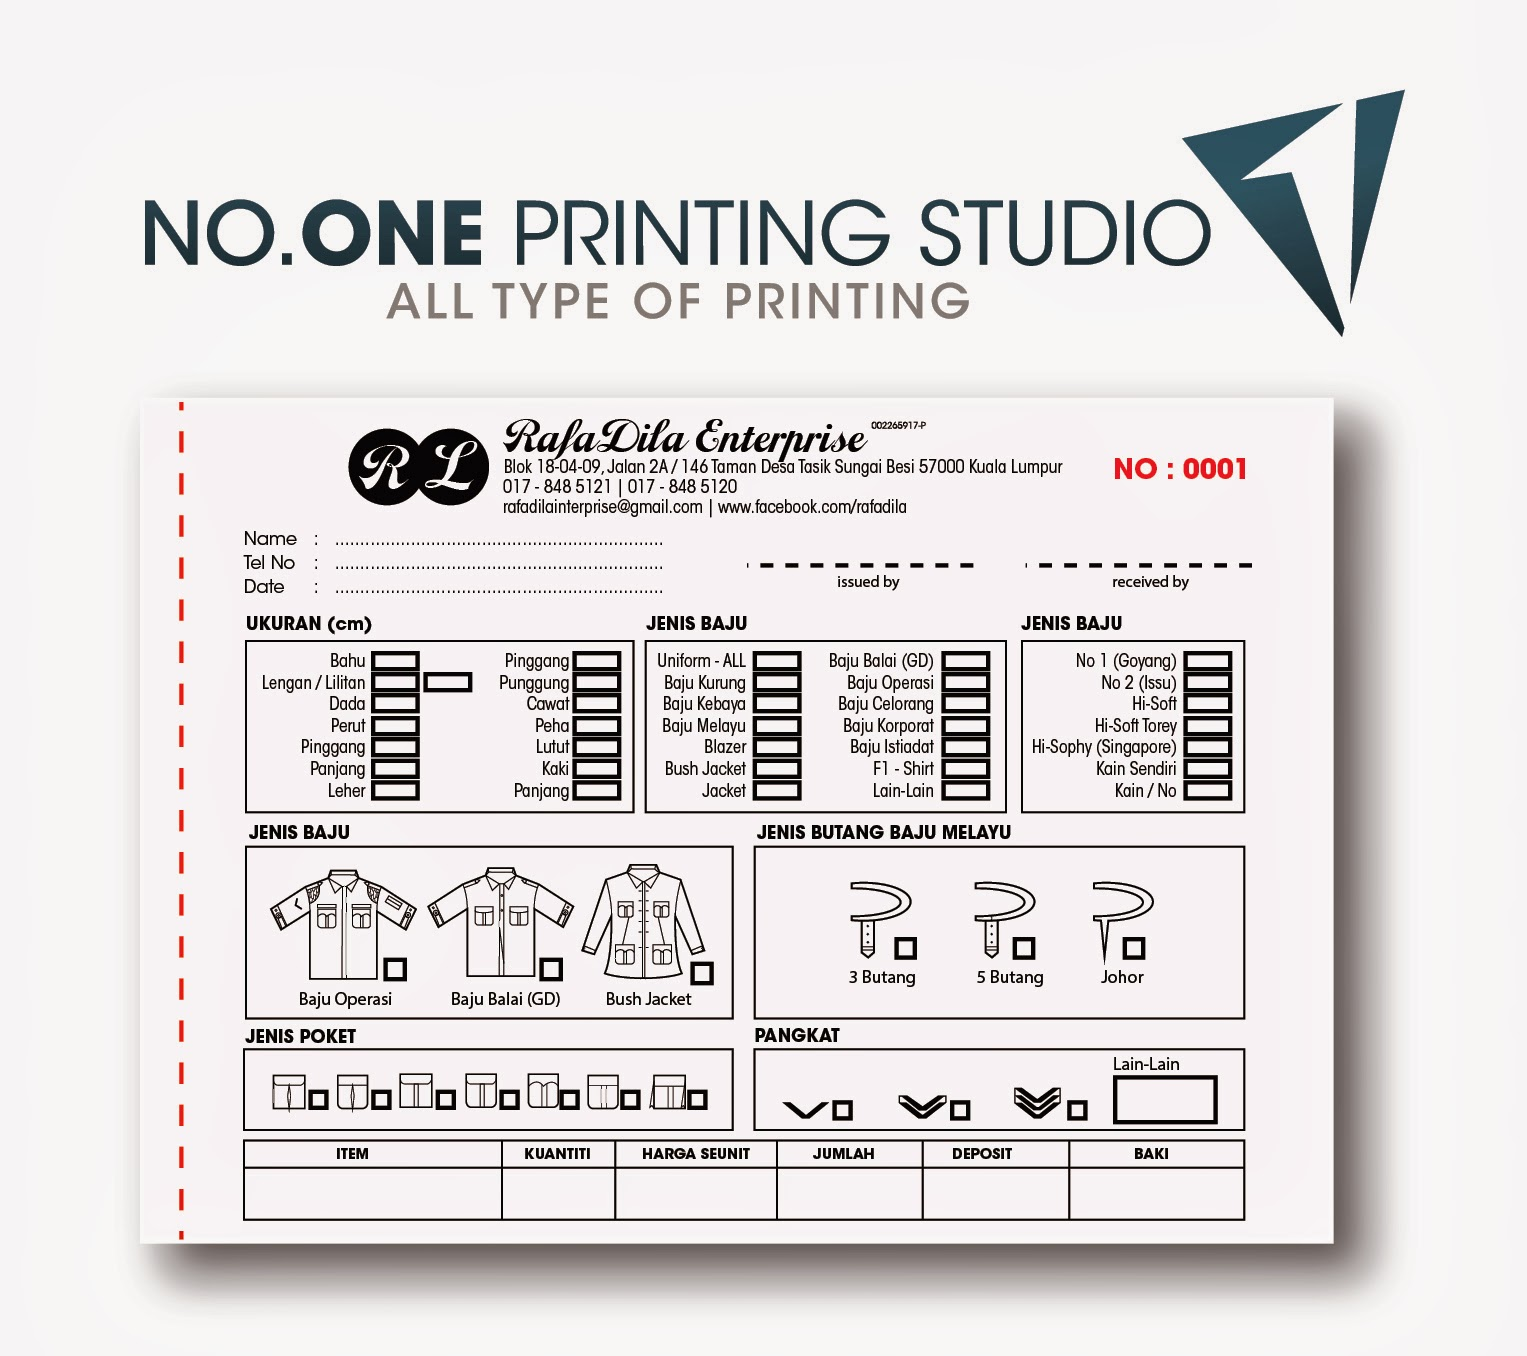 no one printing studio business deal promosi untuk bill book sample bill book for kedai jahit rafadila ent